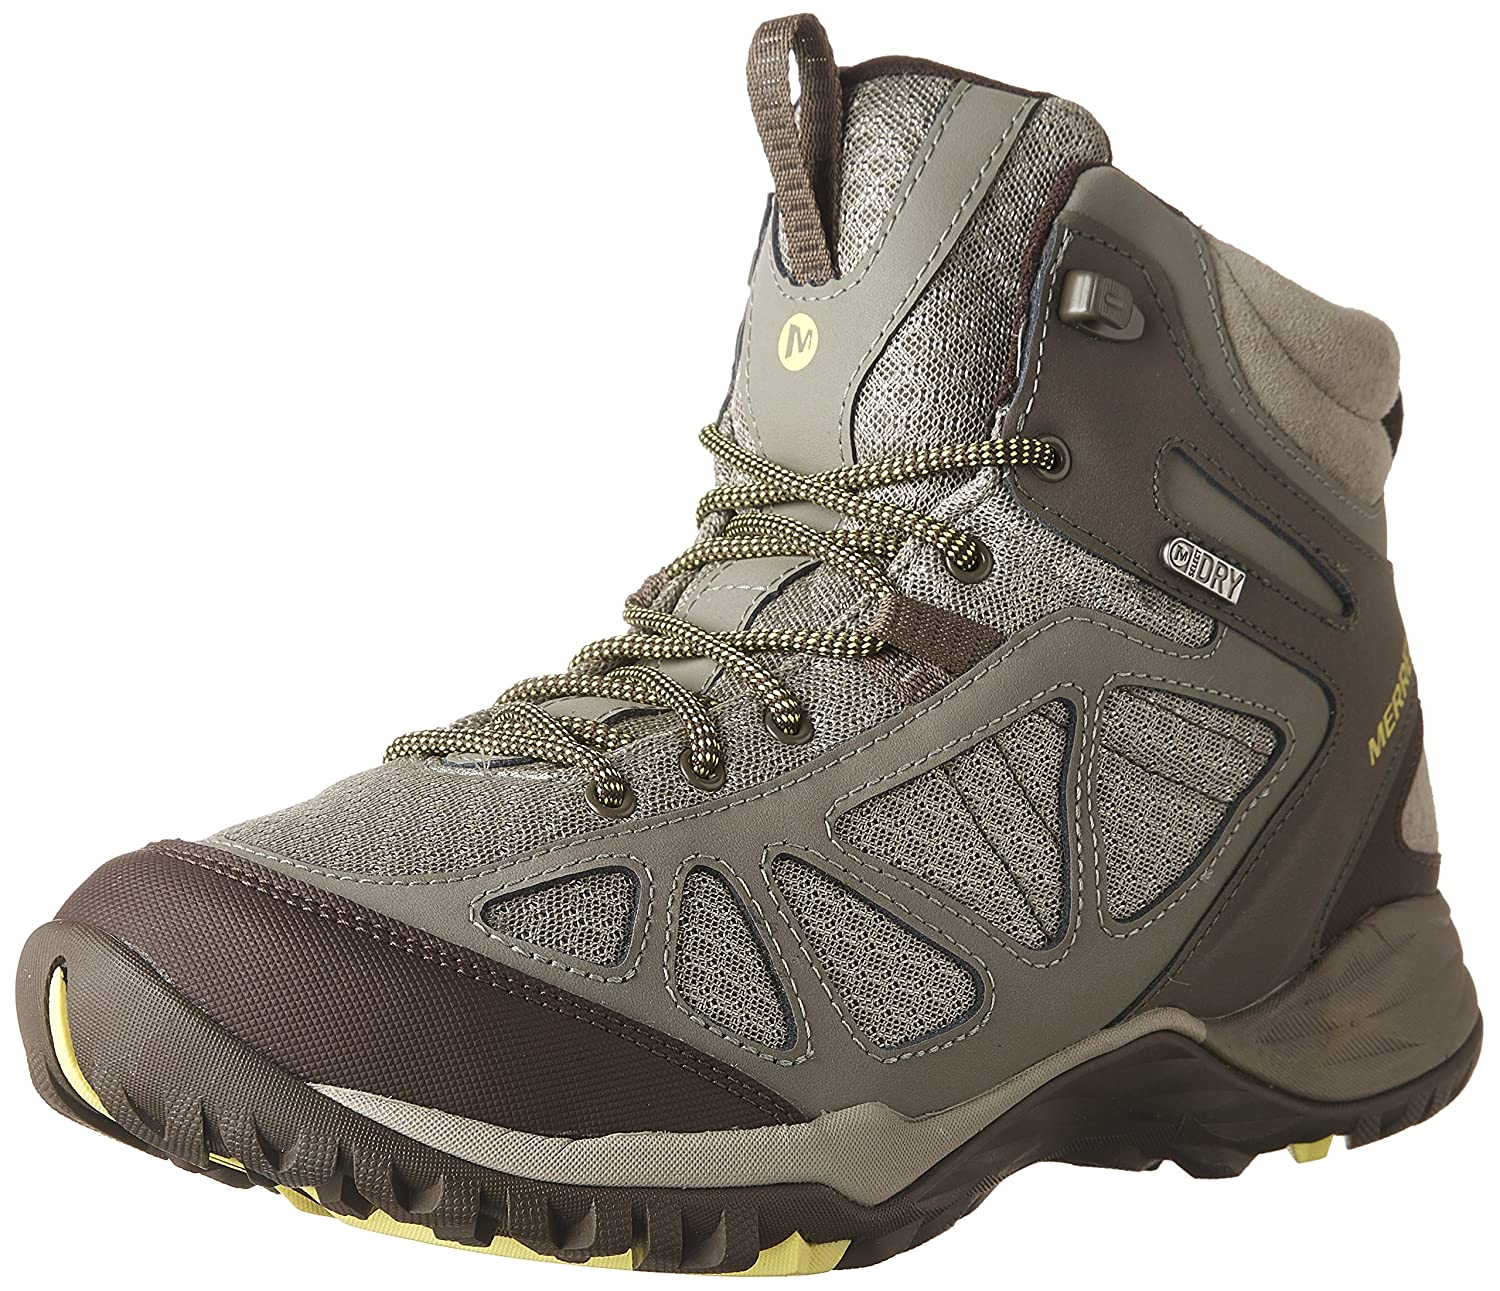 Merrell Women's Siren Sport Q2 Mid Waterproof Hiking Boot B01HFQAFJW 6 W US|Dusty Olive